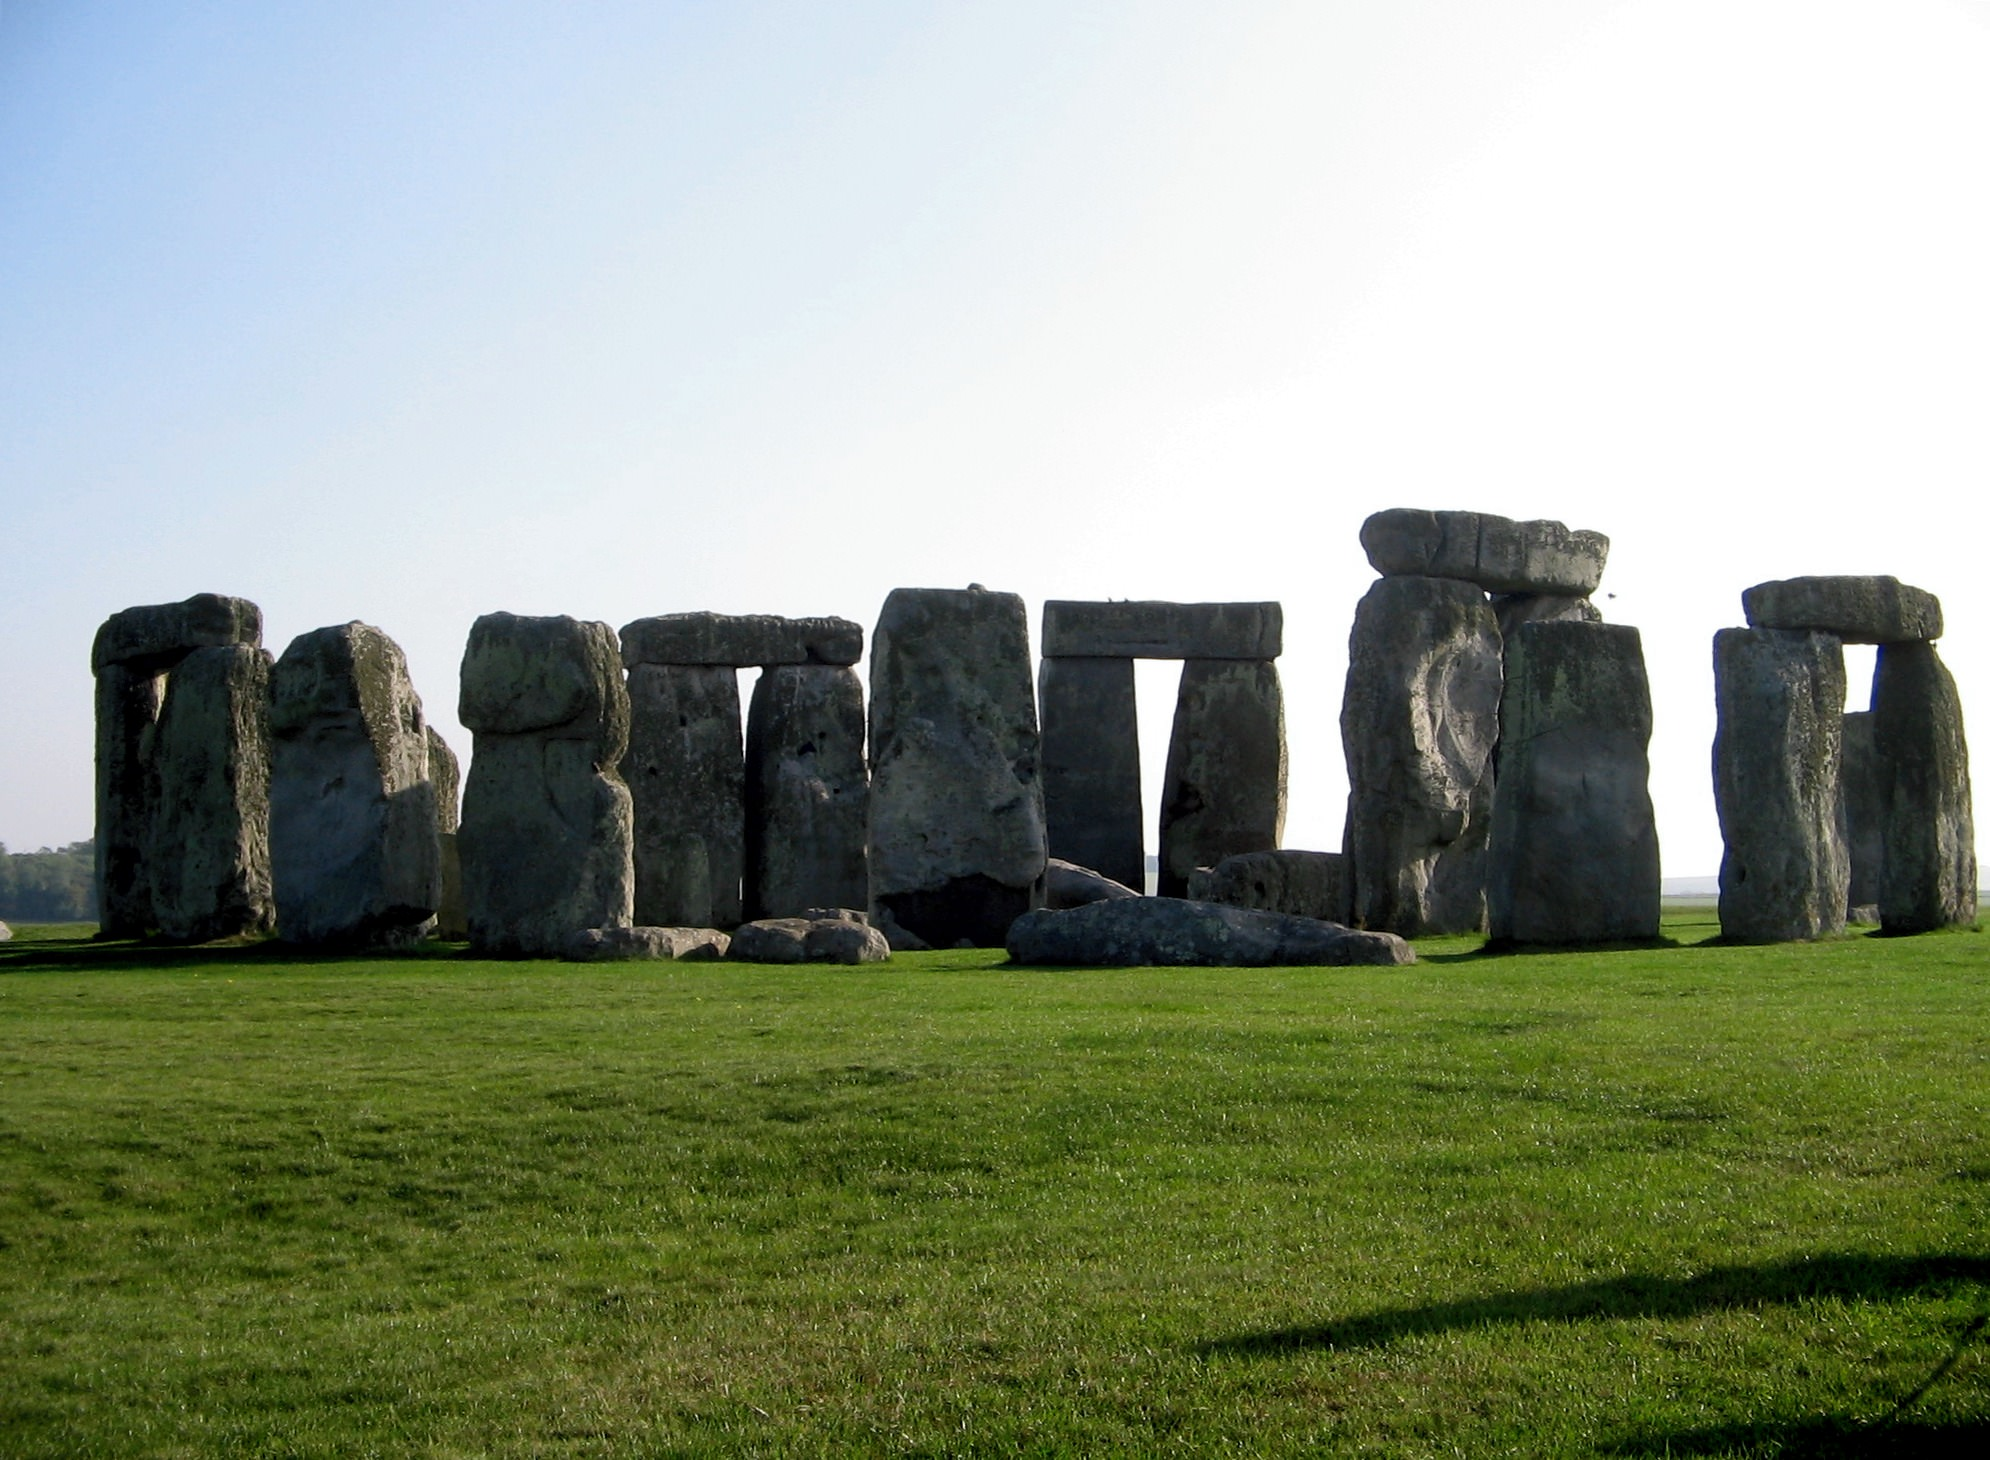 Any druids reading? Look away now